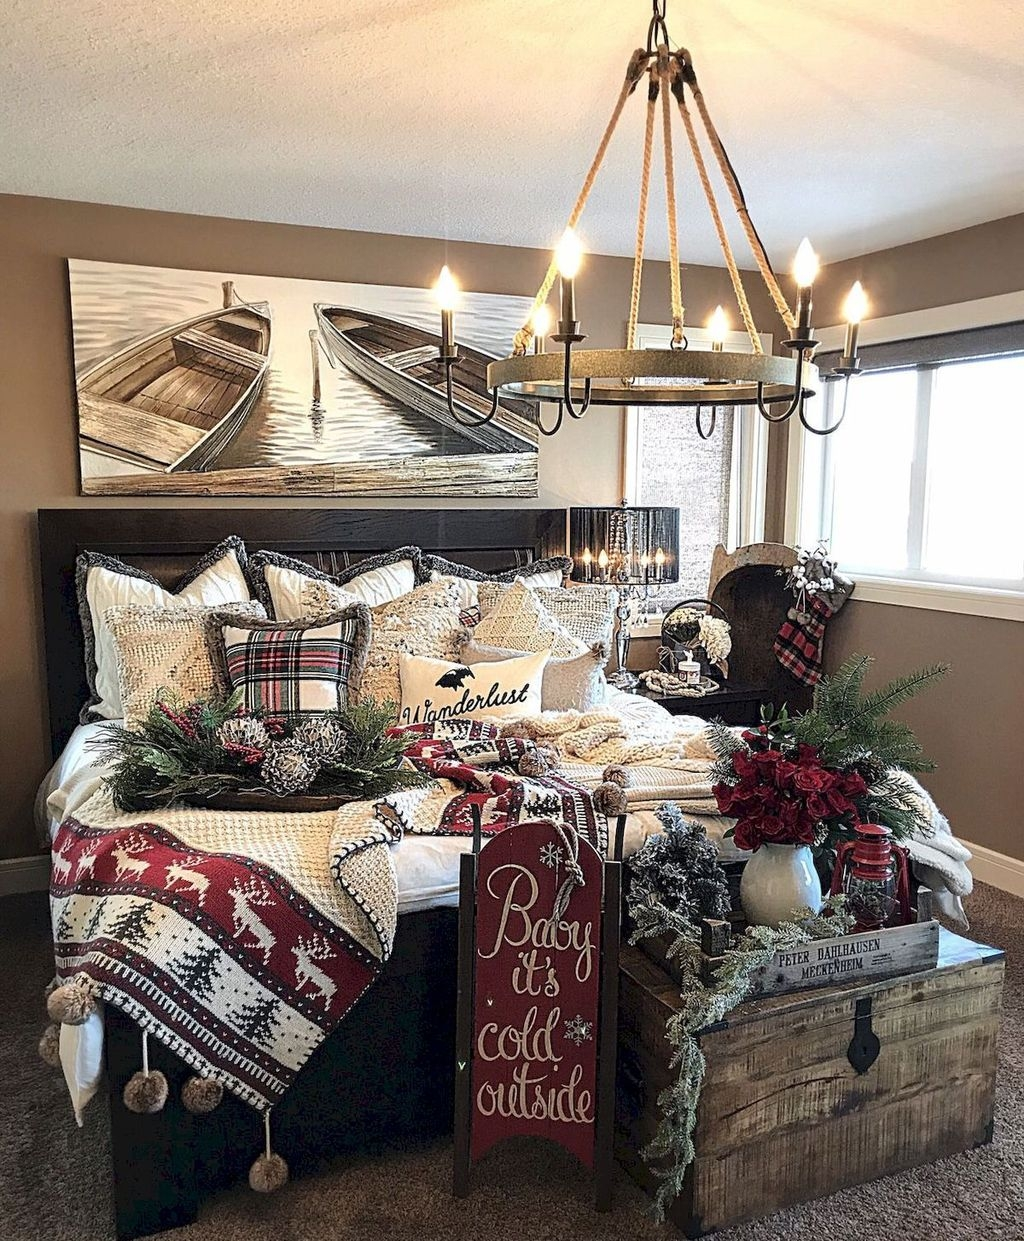 Make Your Bedroom More Romantic With These Romantic Bedroom Decorations 36